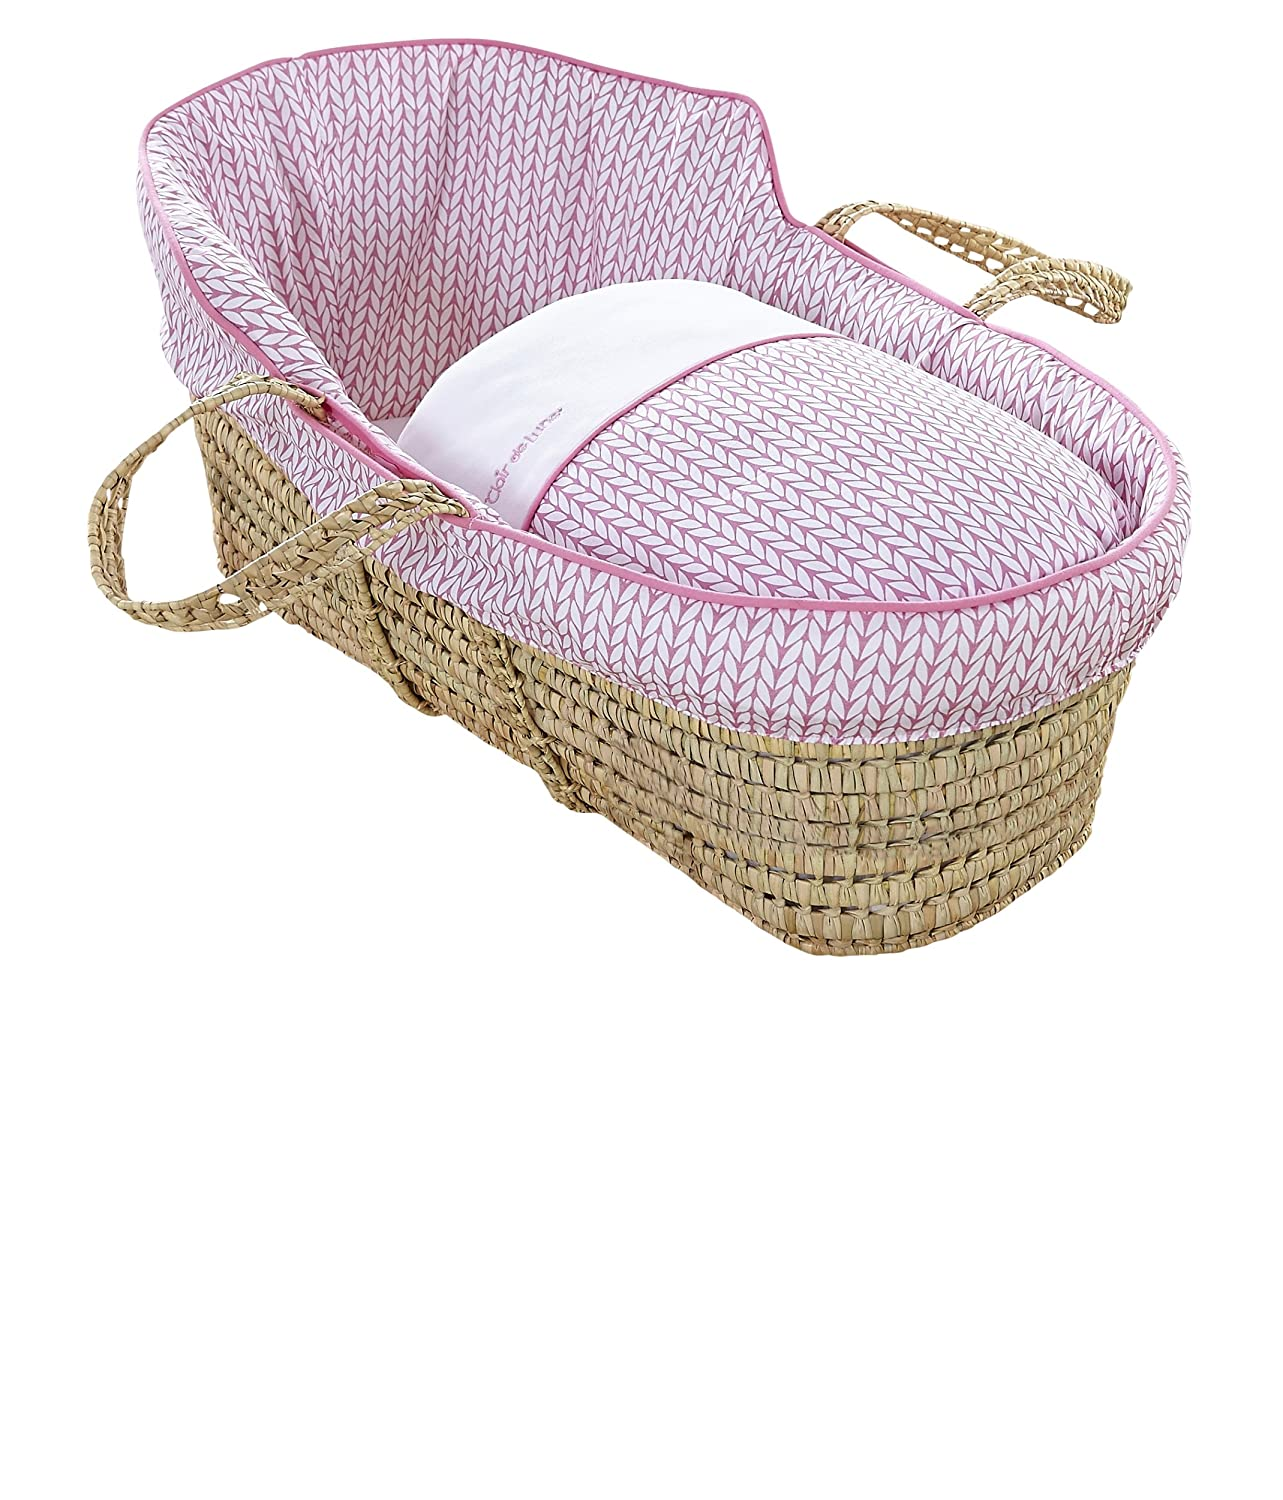 Clair de Lune Barley Bébé High Top Palm Moses Basket (Blue) CL5773BE